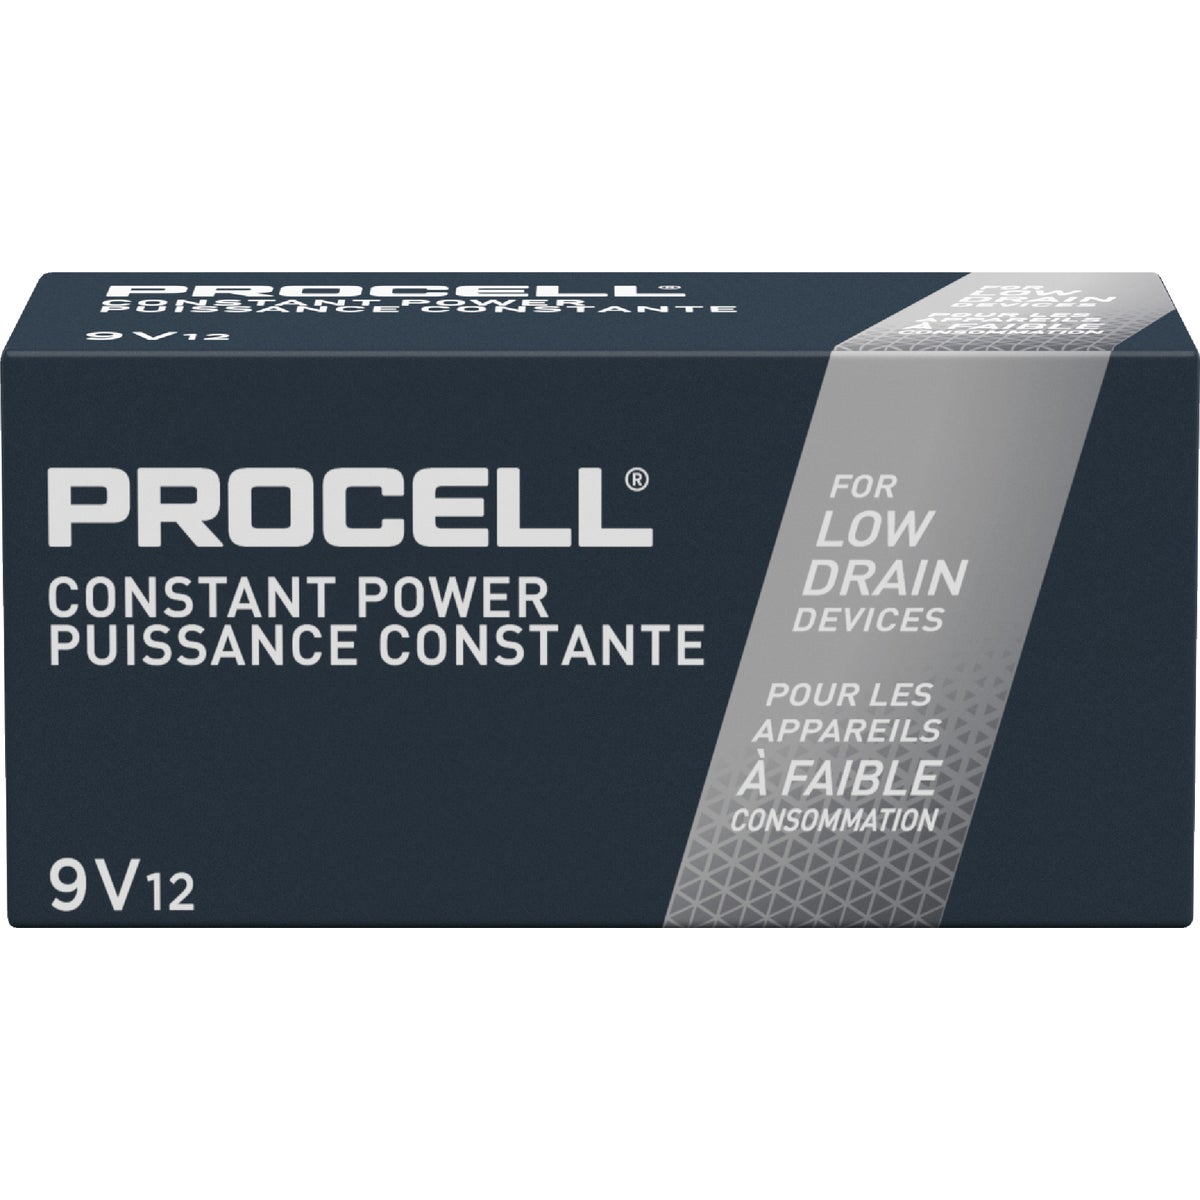 12PK 9V PROCELL BATTERY - 85695 by P & G  Duracell